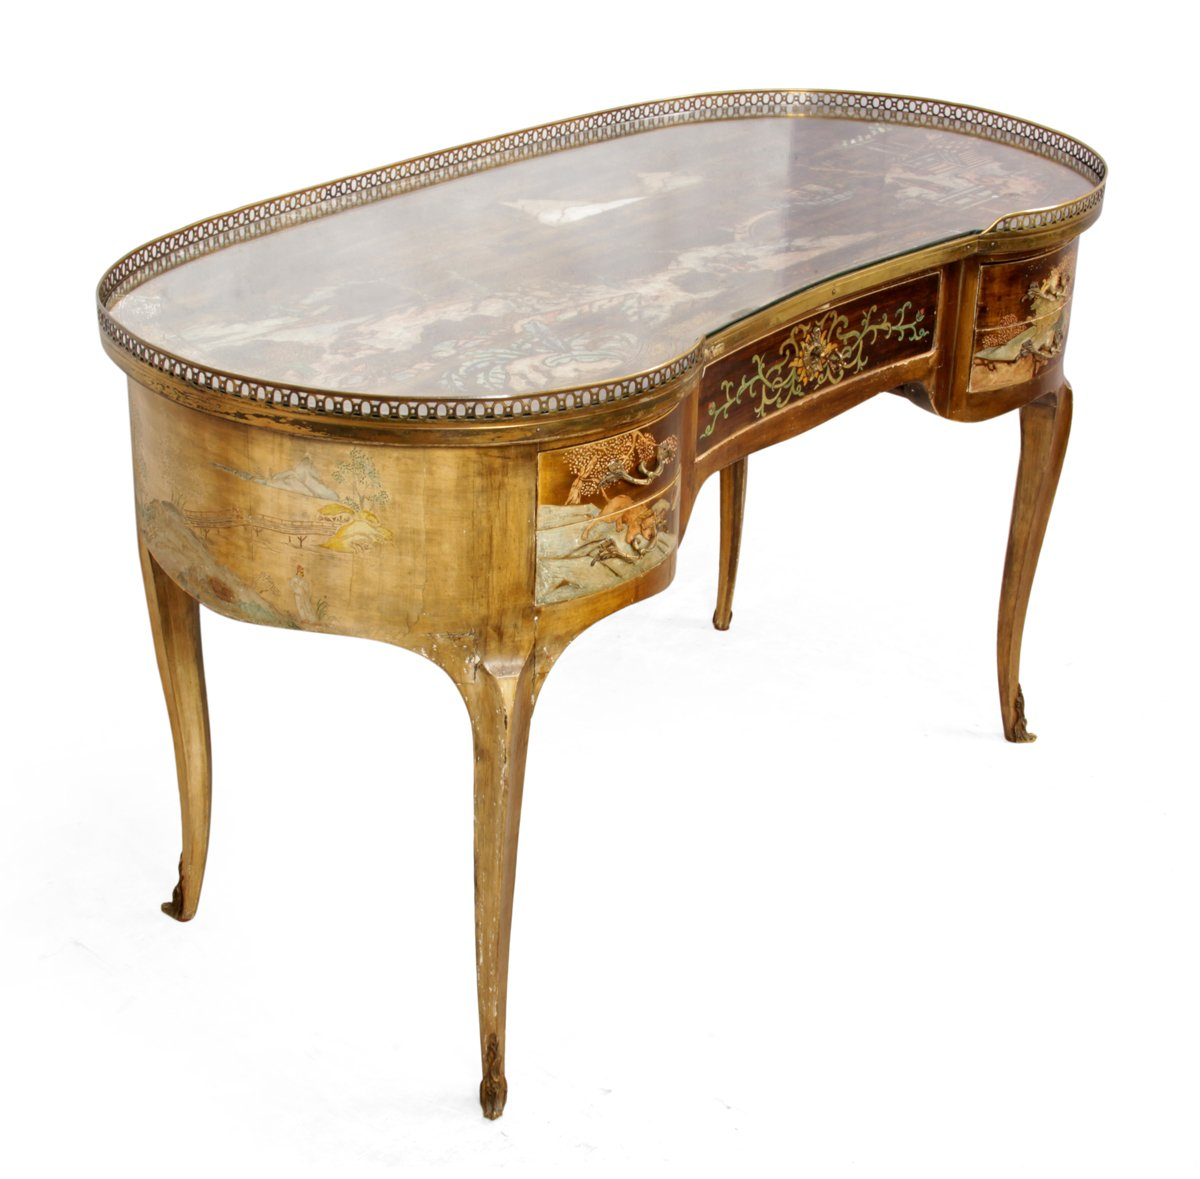 Antique French Chinoiserie Kidney Writing Desk, 1860s for sale at Pamono - Antique French Chinoiserie Kidney Writing Desk, 1860s For Sale At